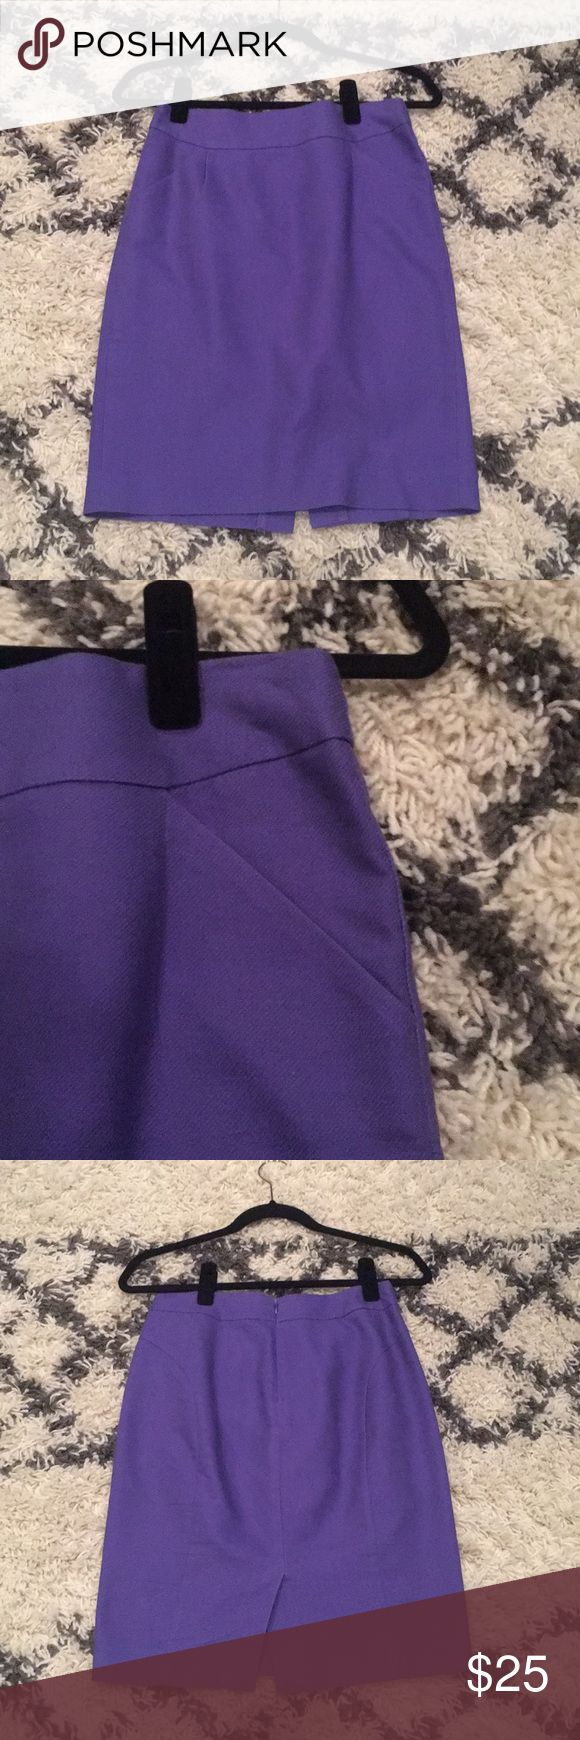 J. Crew Purple Pencil Skirt Gorgeous purple pencil skirt with pockets! Very flattering on. Excellent condition. J. Crew Skirts Pencil